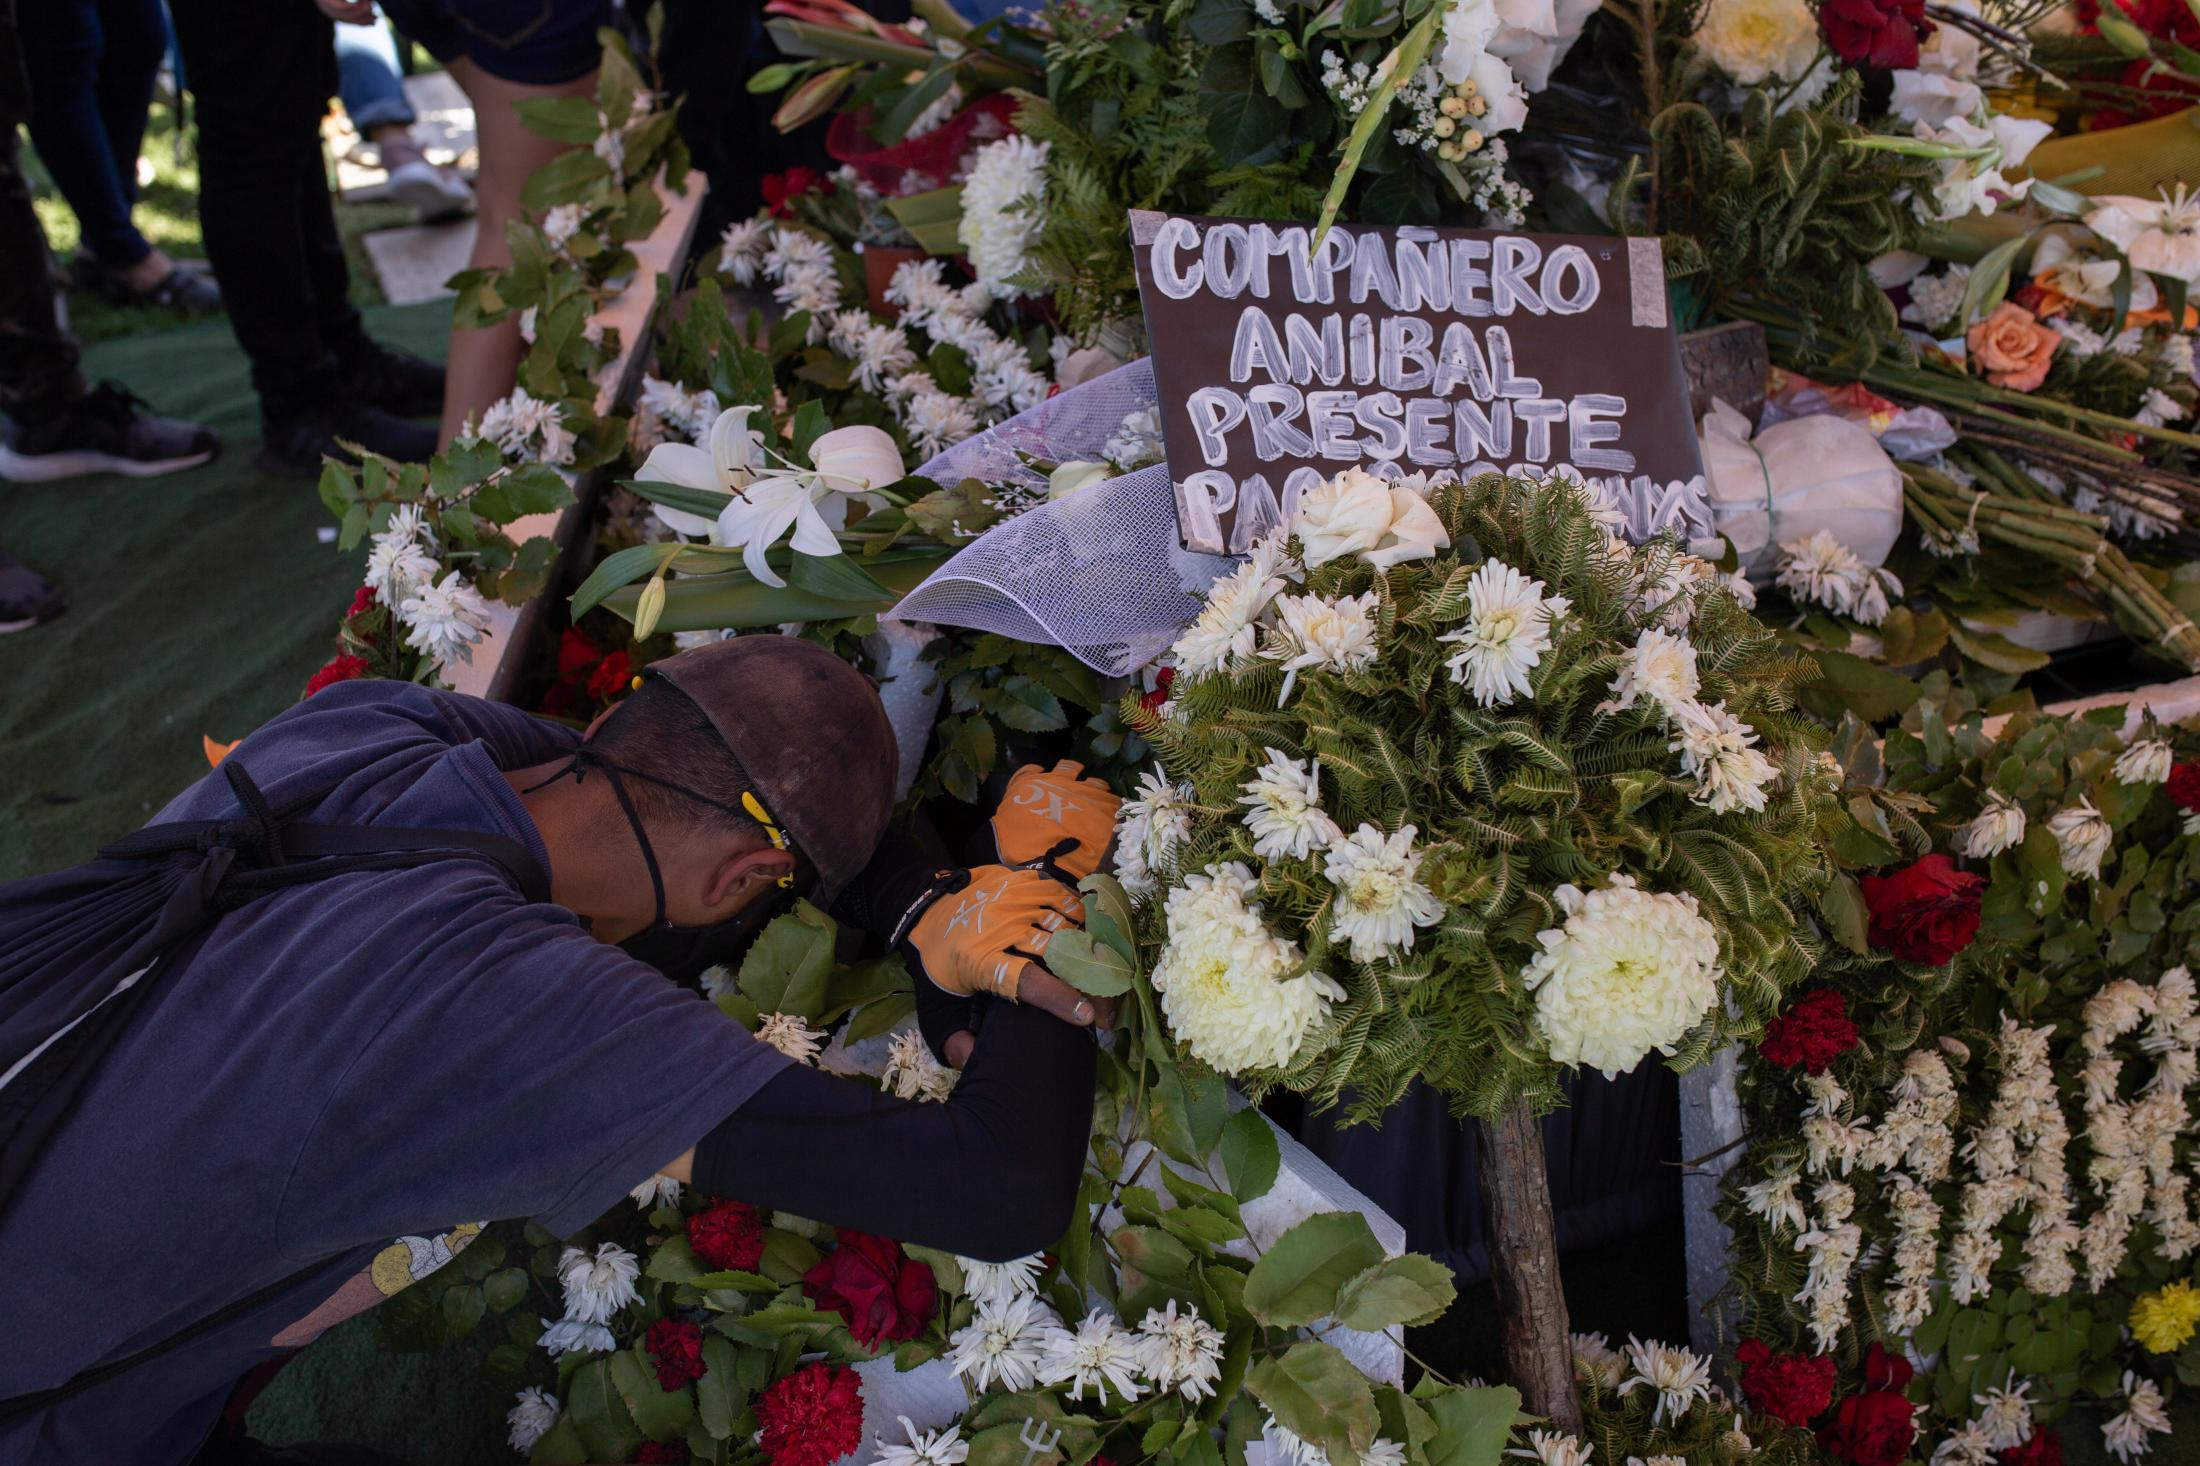 October 22, 2020. Funeral of Aníbal Villarroel, a young man who died on October 18, 2020 as a result of shots fired by Carabineros during the commemoration of the first anniversary of the social outbreak in the town of La Victoria. Santiago, Chile.